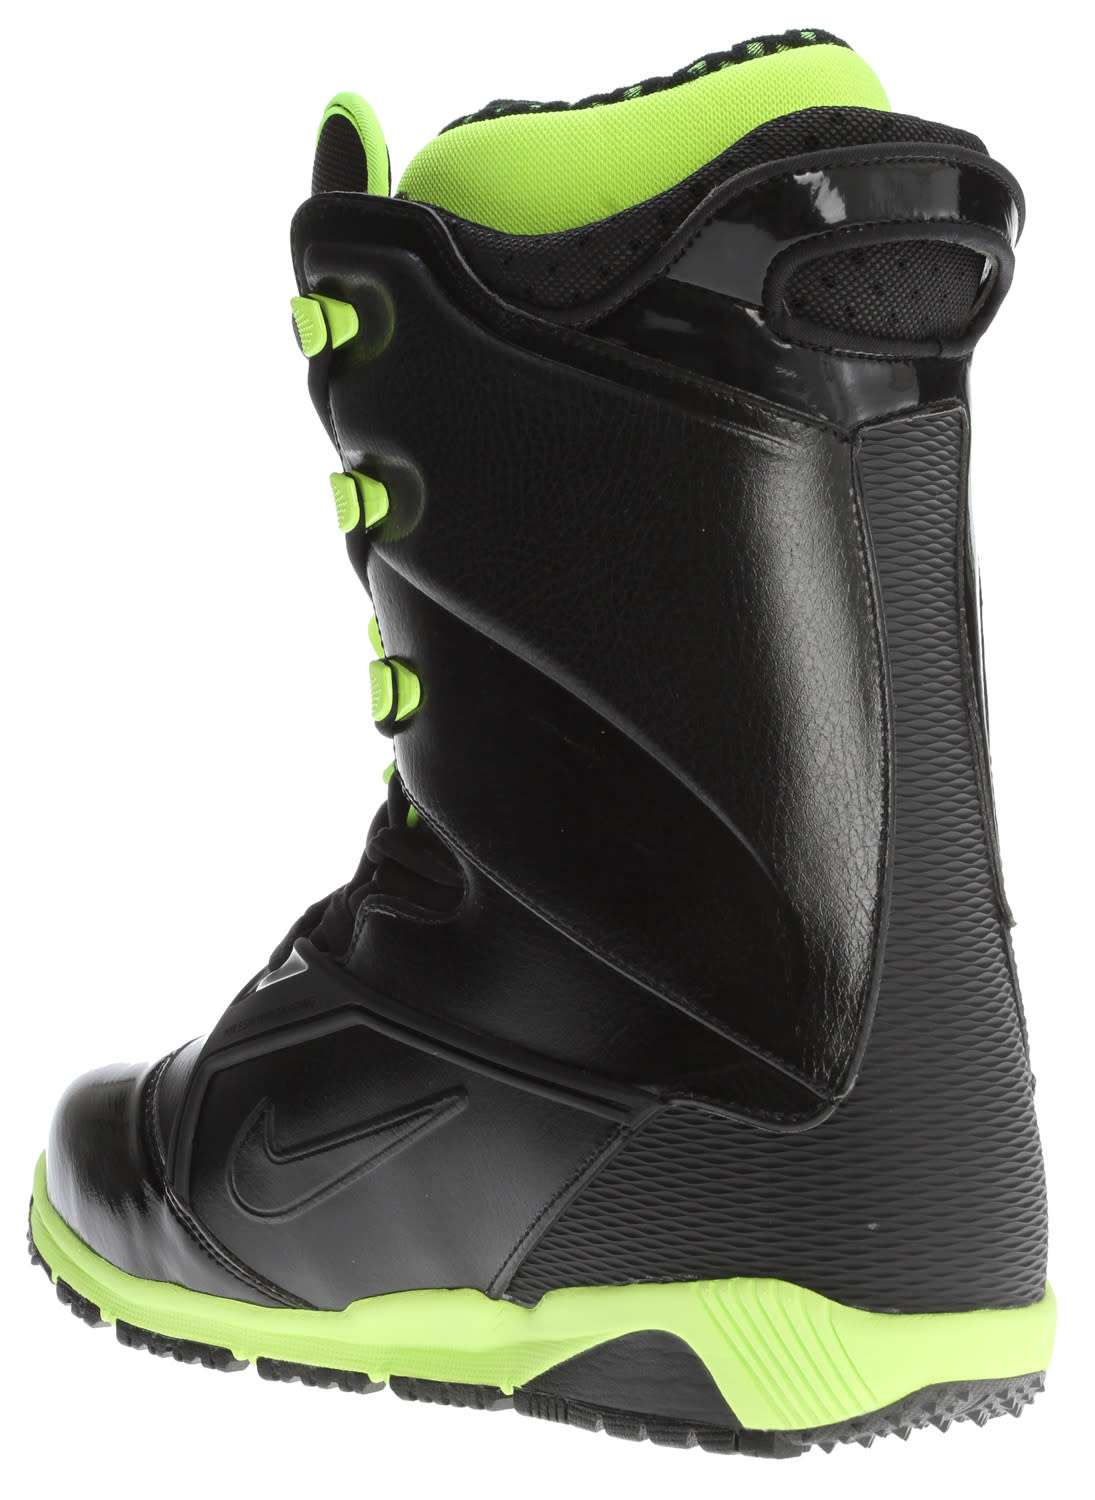 sports shoes d8373 844c3 Nike Zoom Ites Snowboard Boots